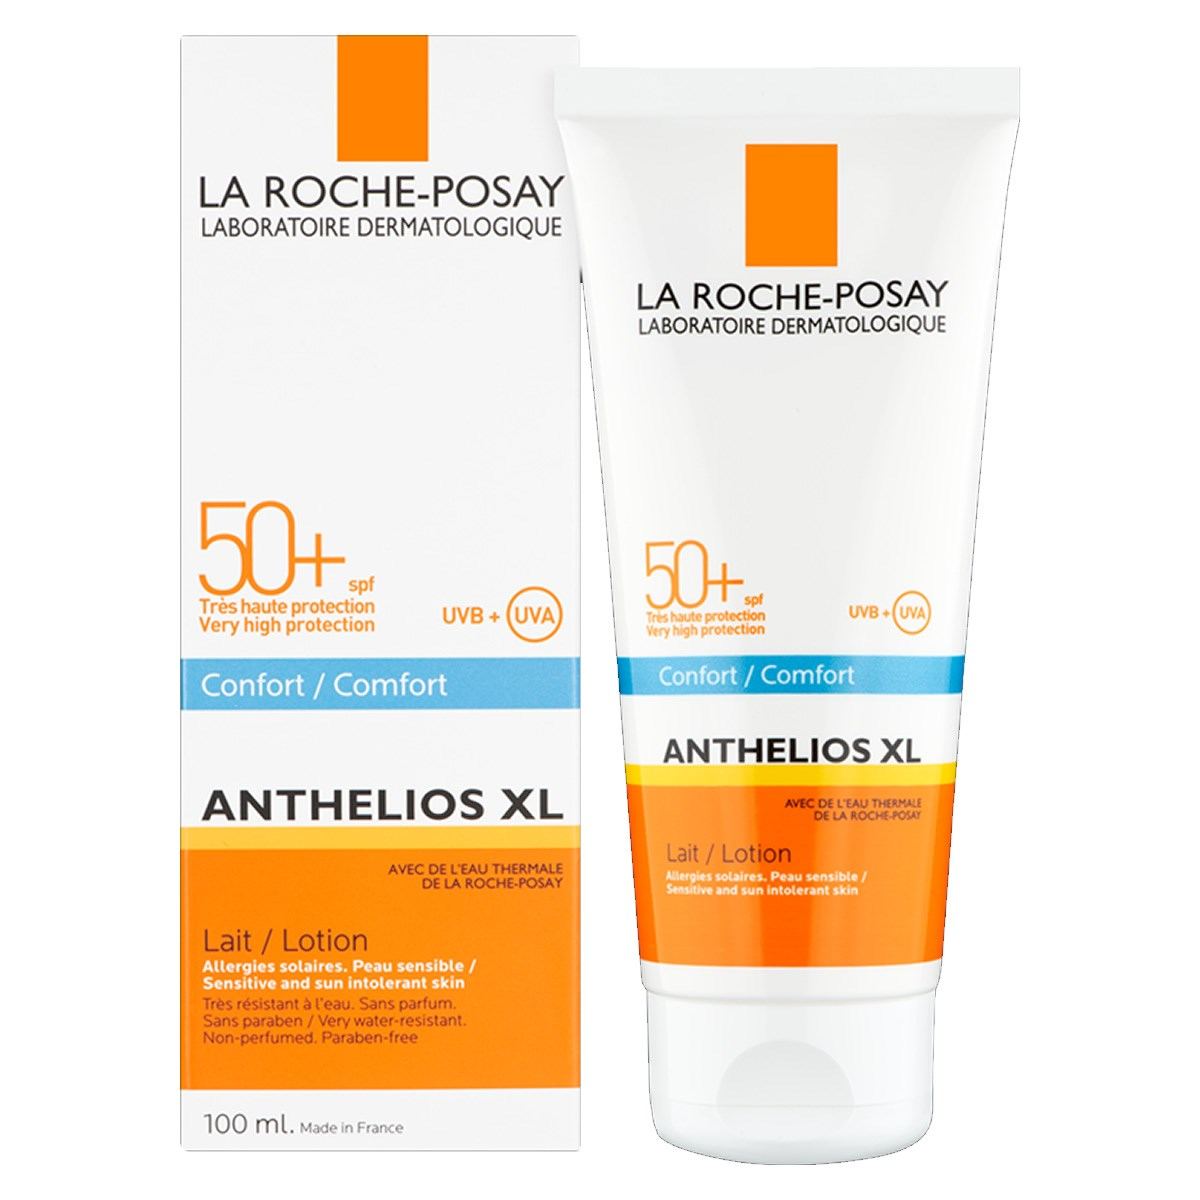 La Roche-Posay Anthelios XL Comfort Lotion SPF50+